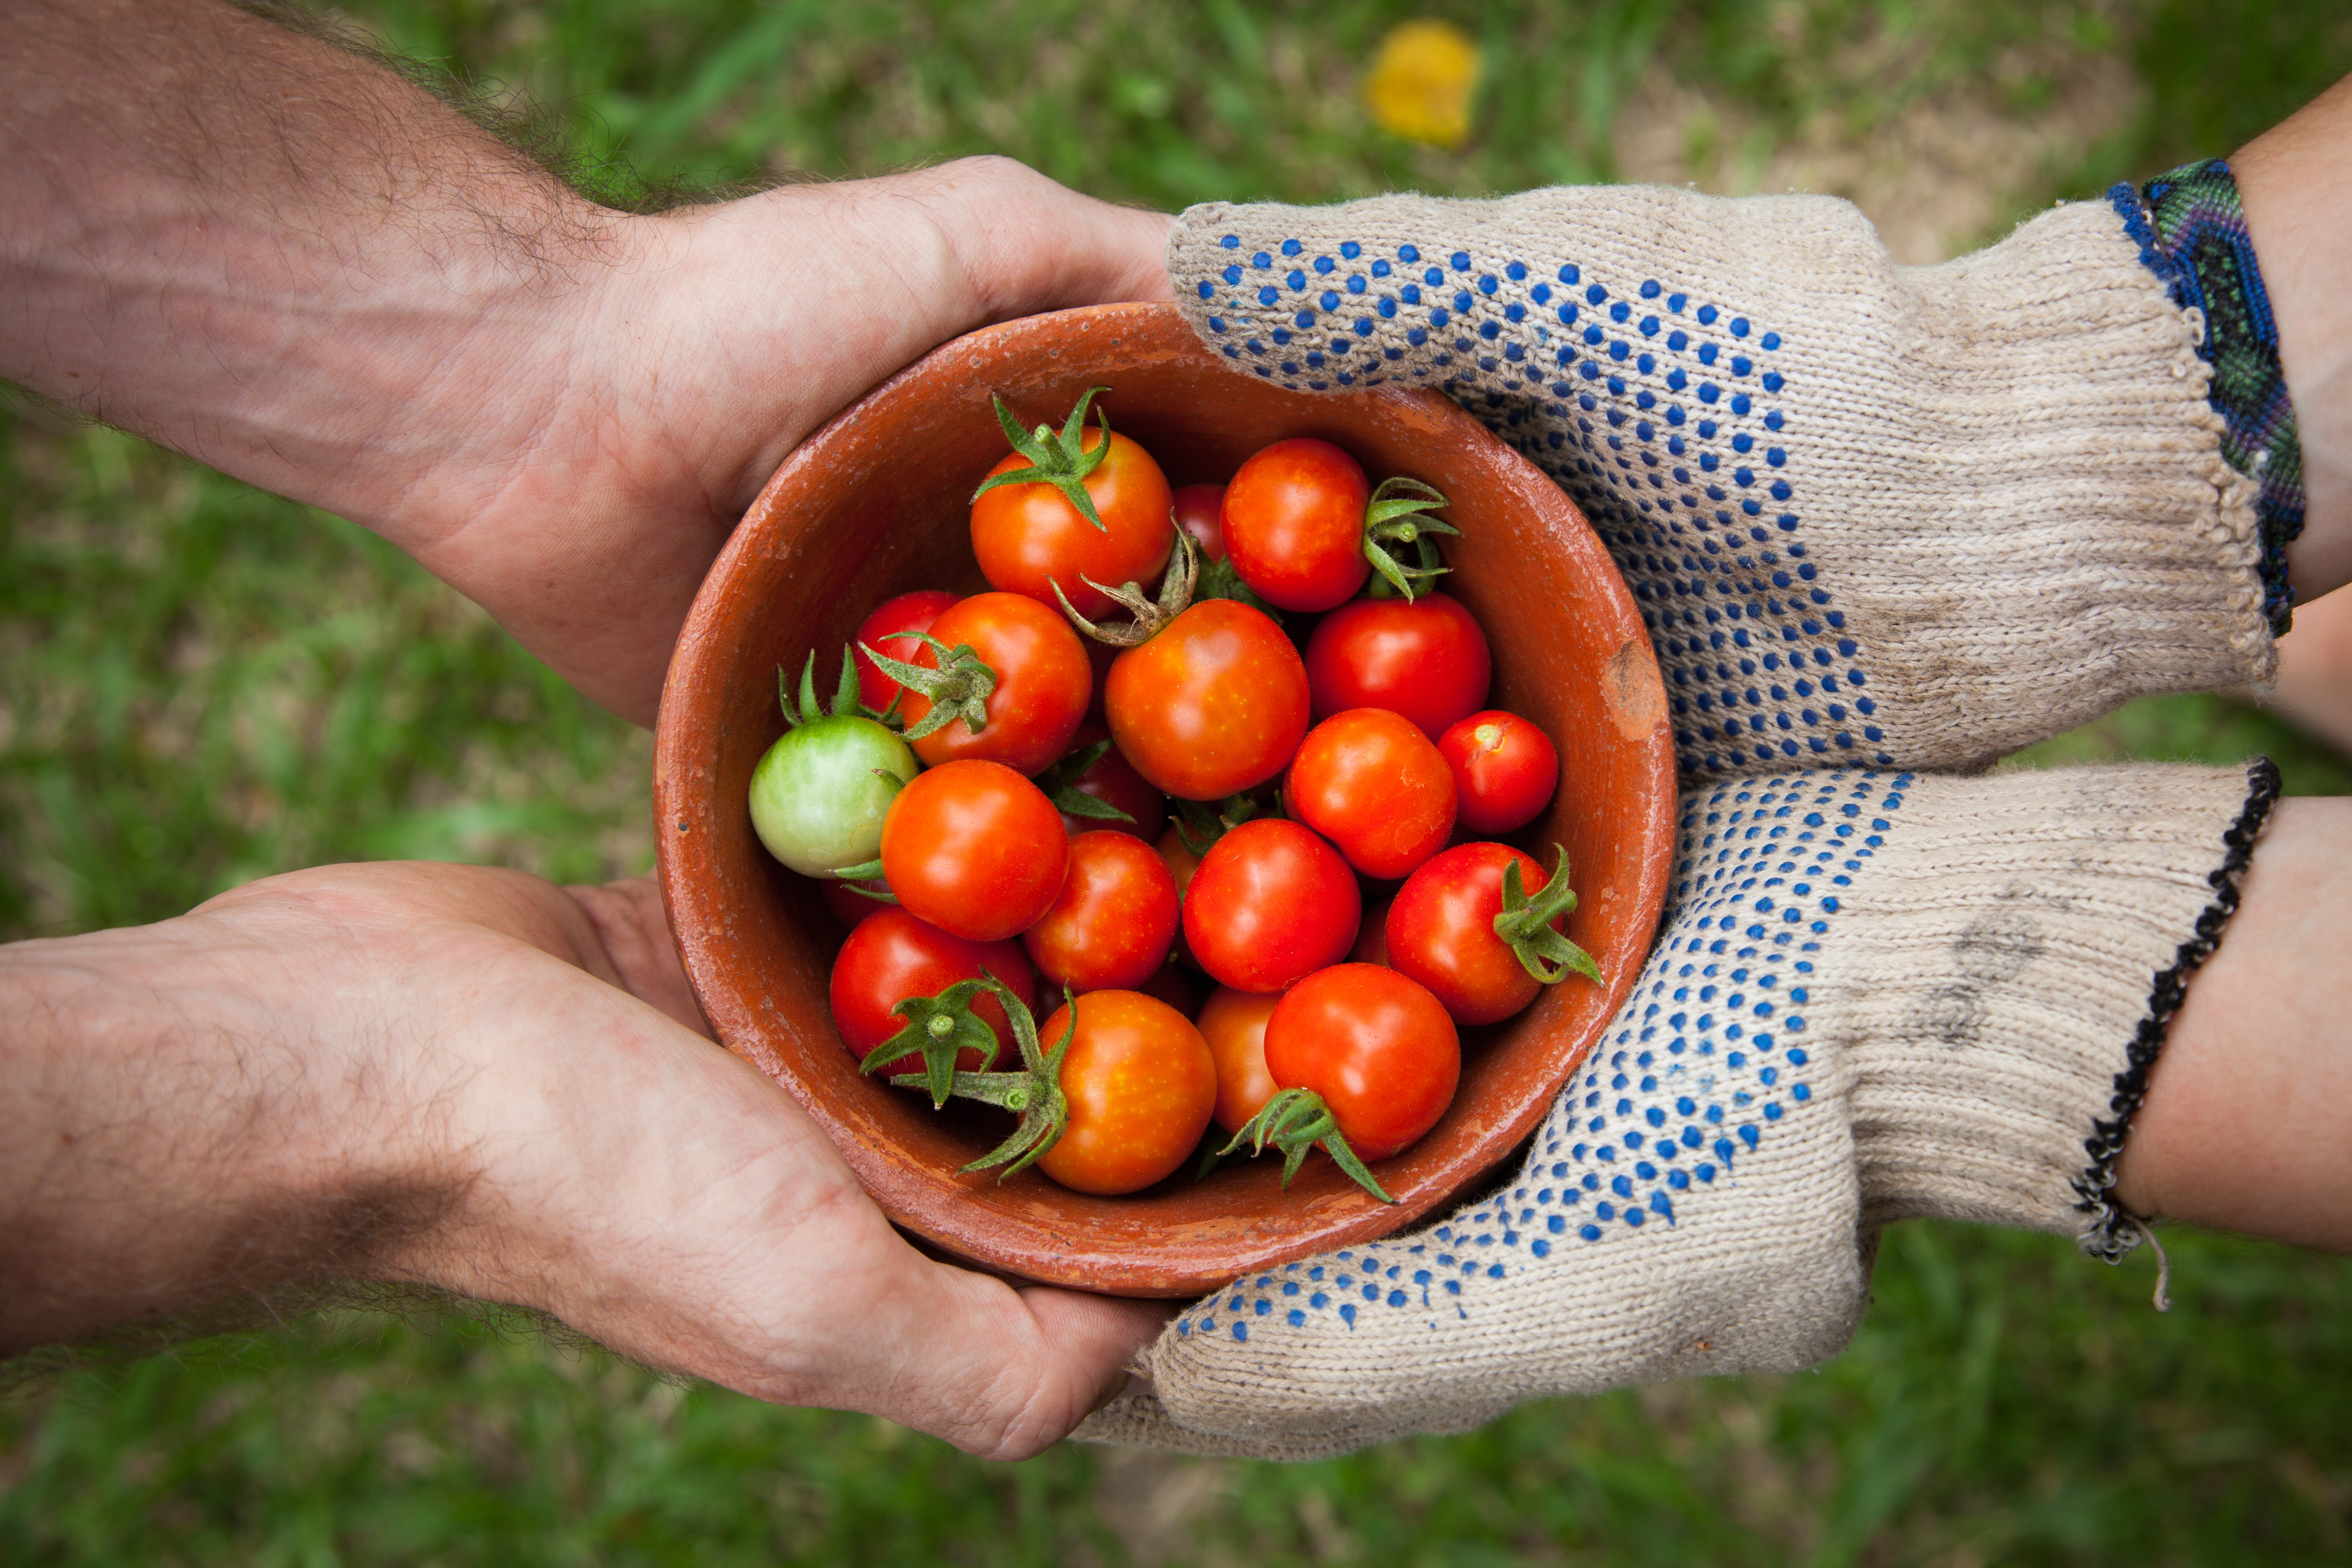 One person wearing gloves and another person holding a bowl of red cherry tomatoes